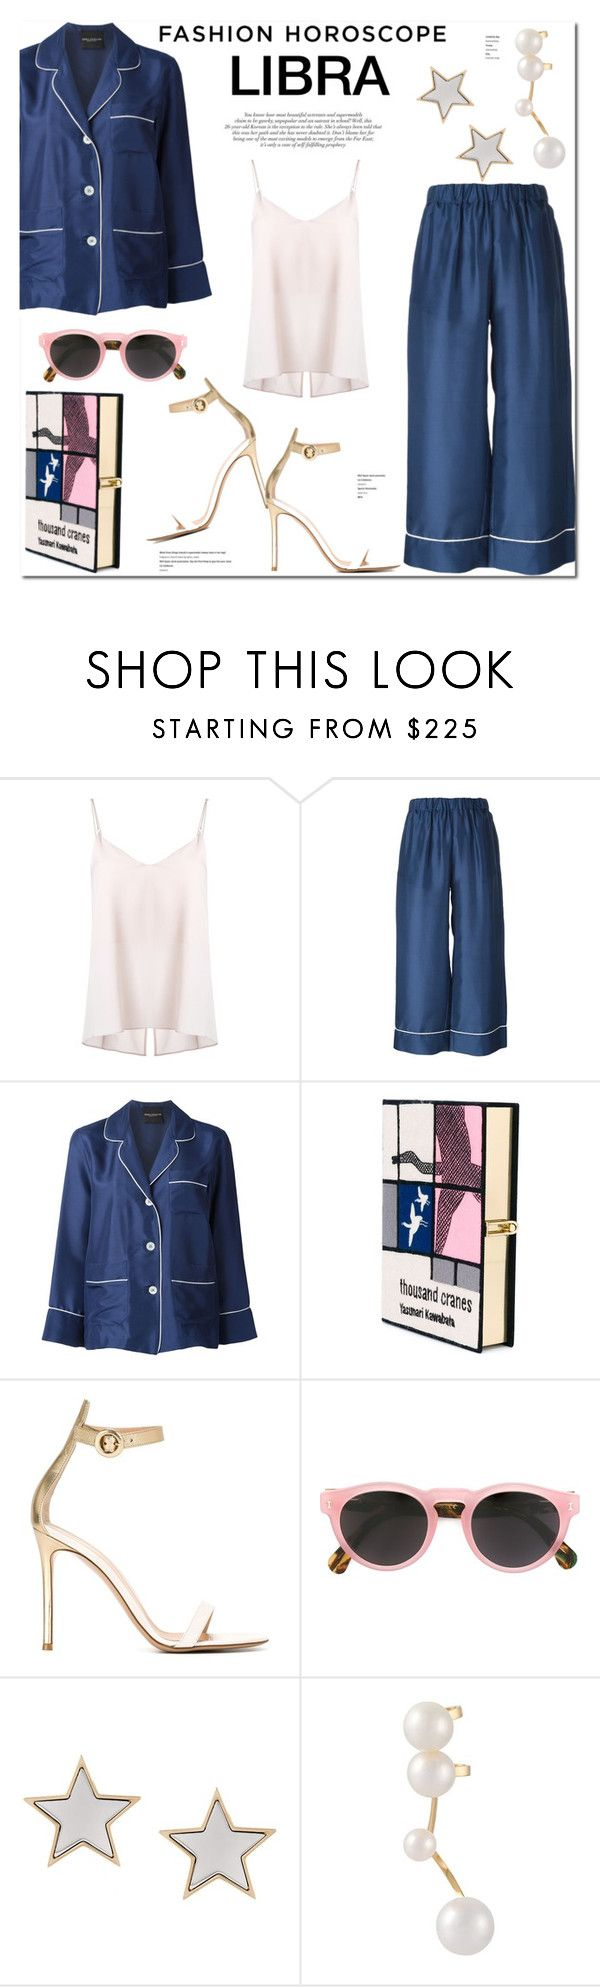 """Fashion Horoscope: Libra"" by stellaasteria ❤ liked on Polyvore featuring Ginger & Smart, Erika Cavallini Semi-Couture, Olympia Le-Tan, Gianvito Rossi, Illesteva, Givenchy and Delfina Delettrez"